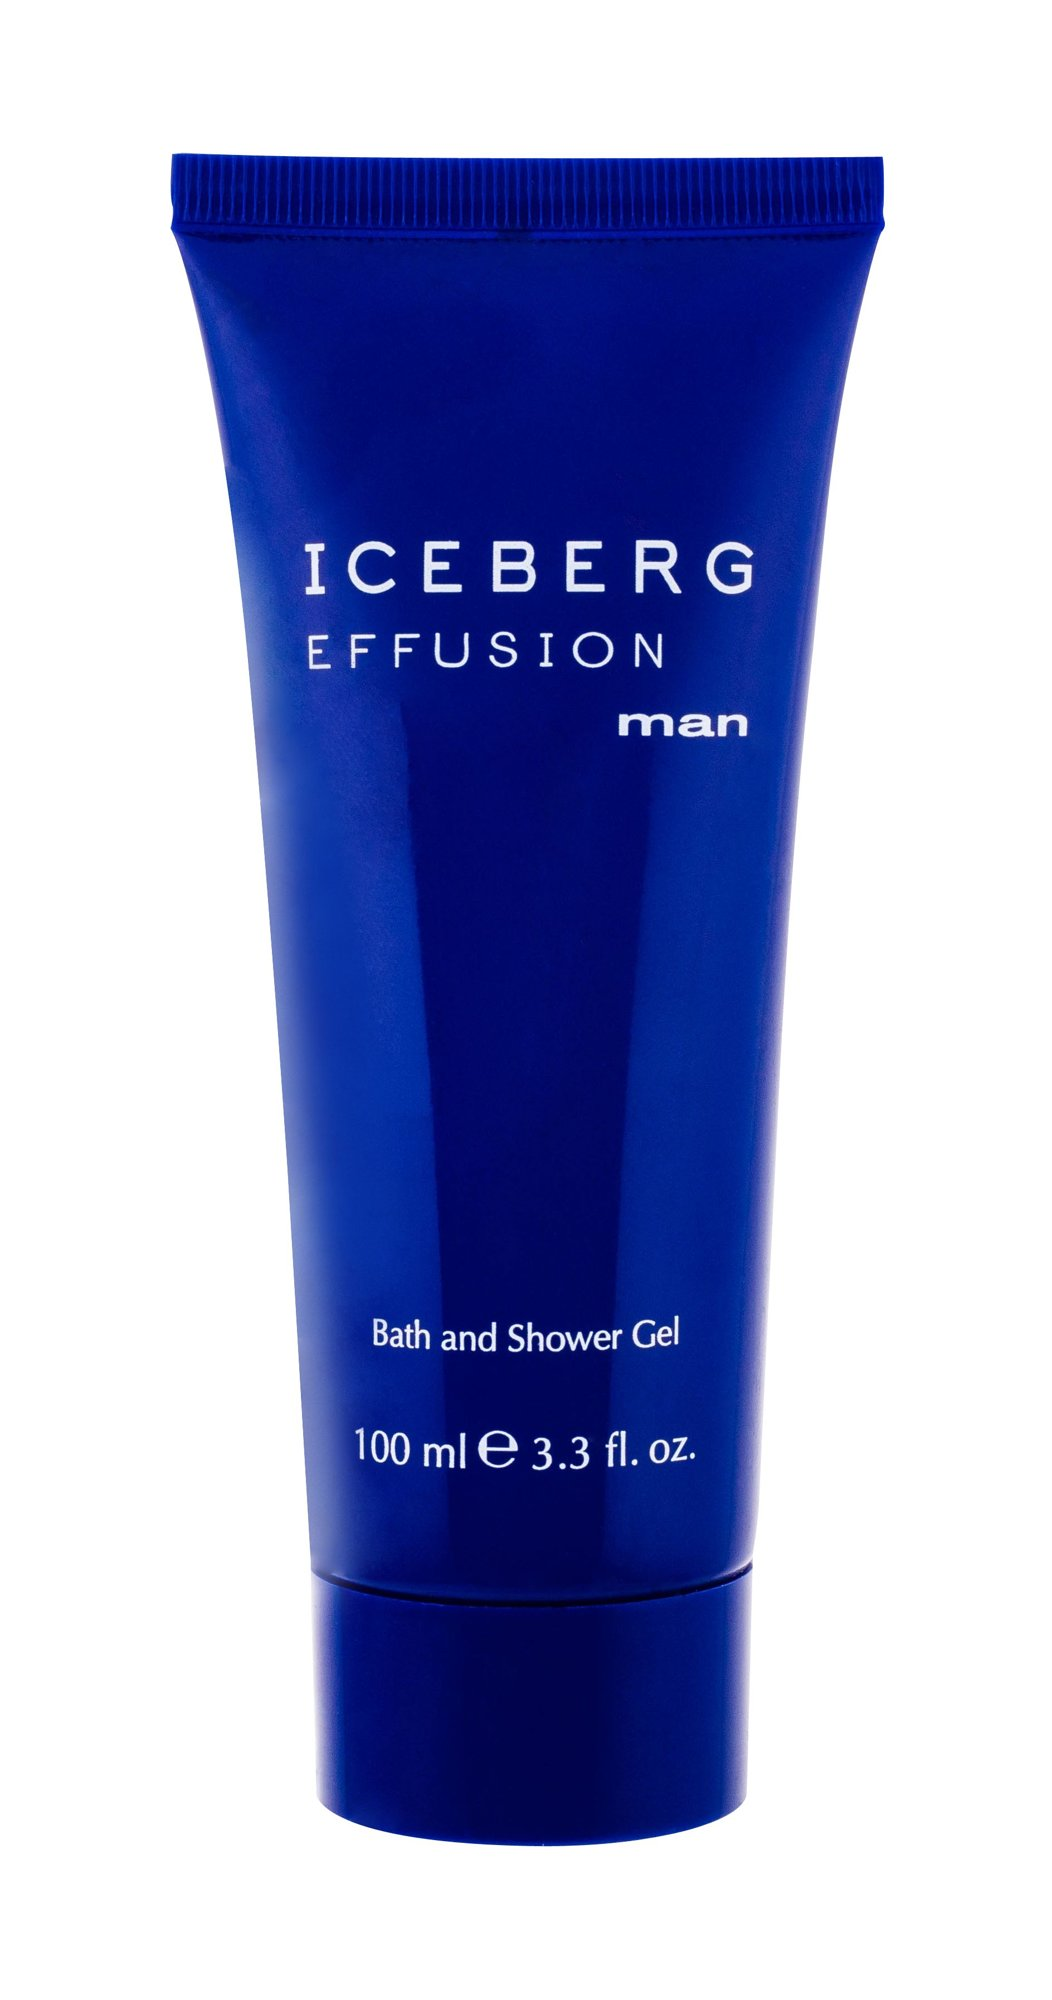 Iceberg Effusion Man Shower Gel 100ml